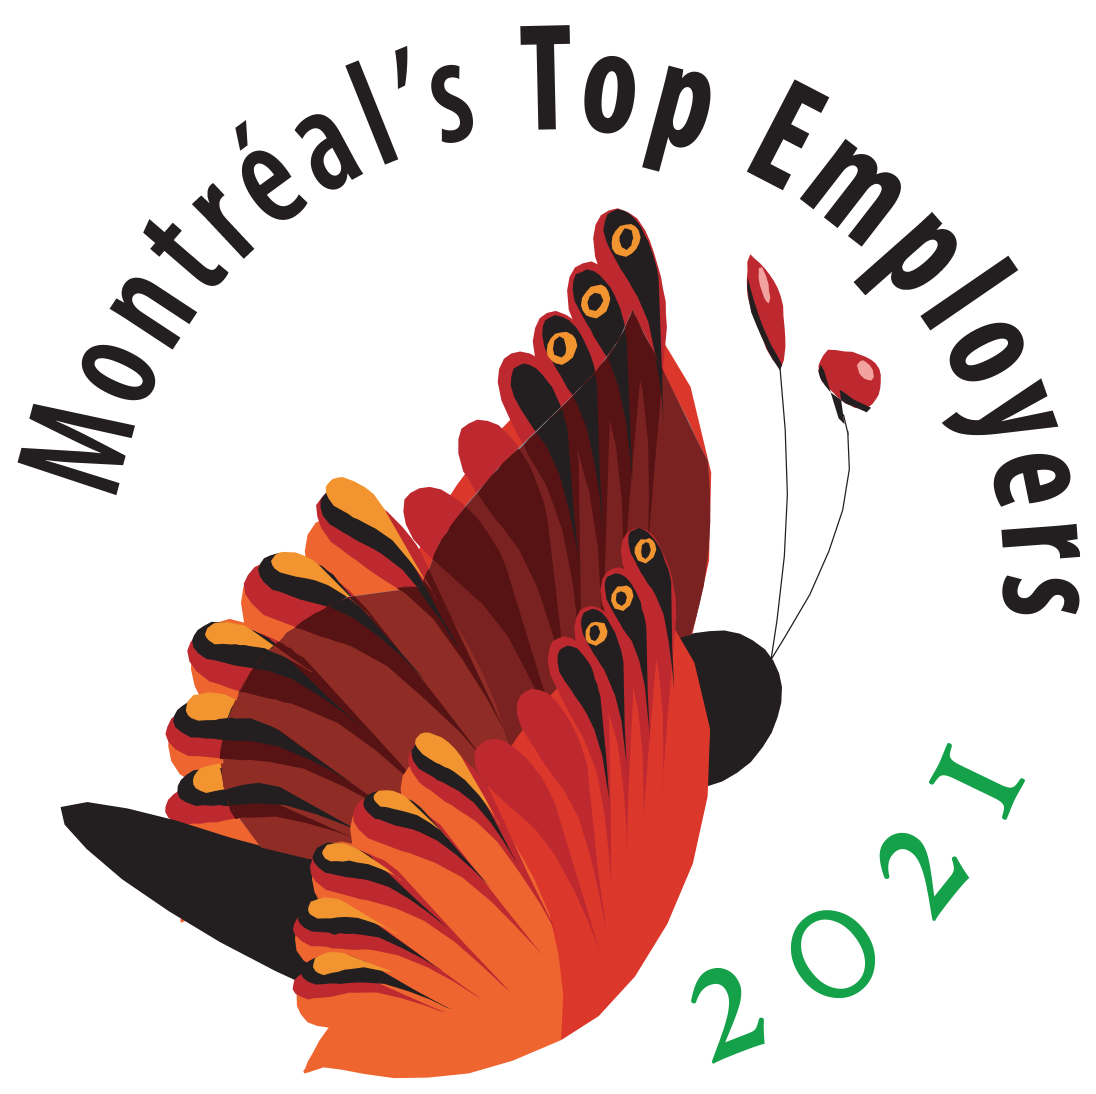 montreal 2020